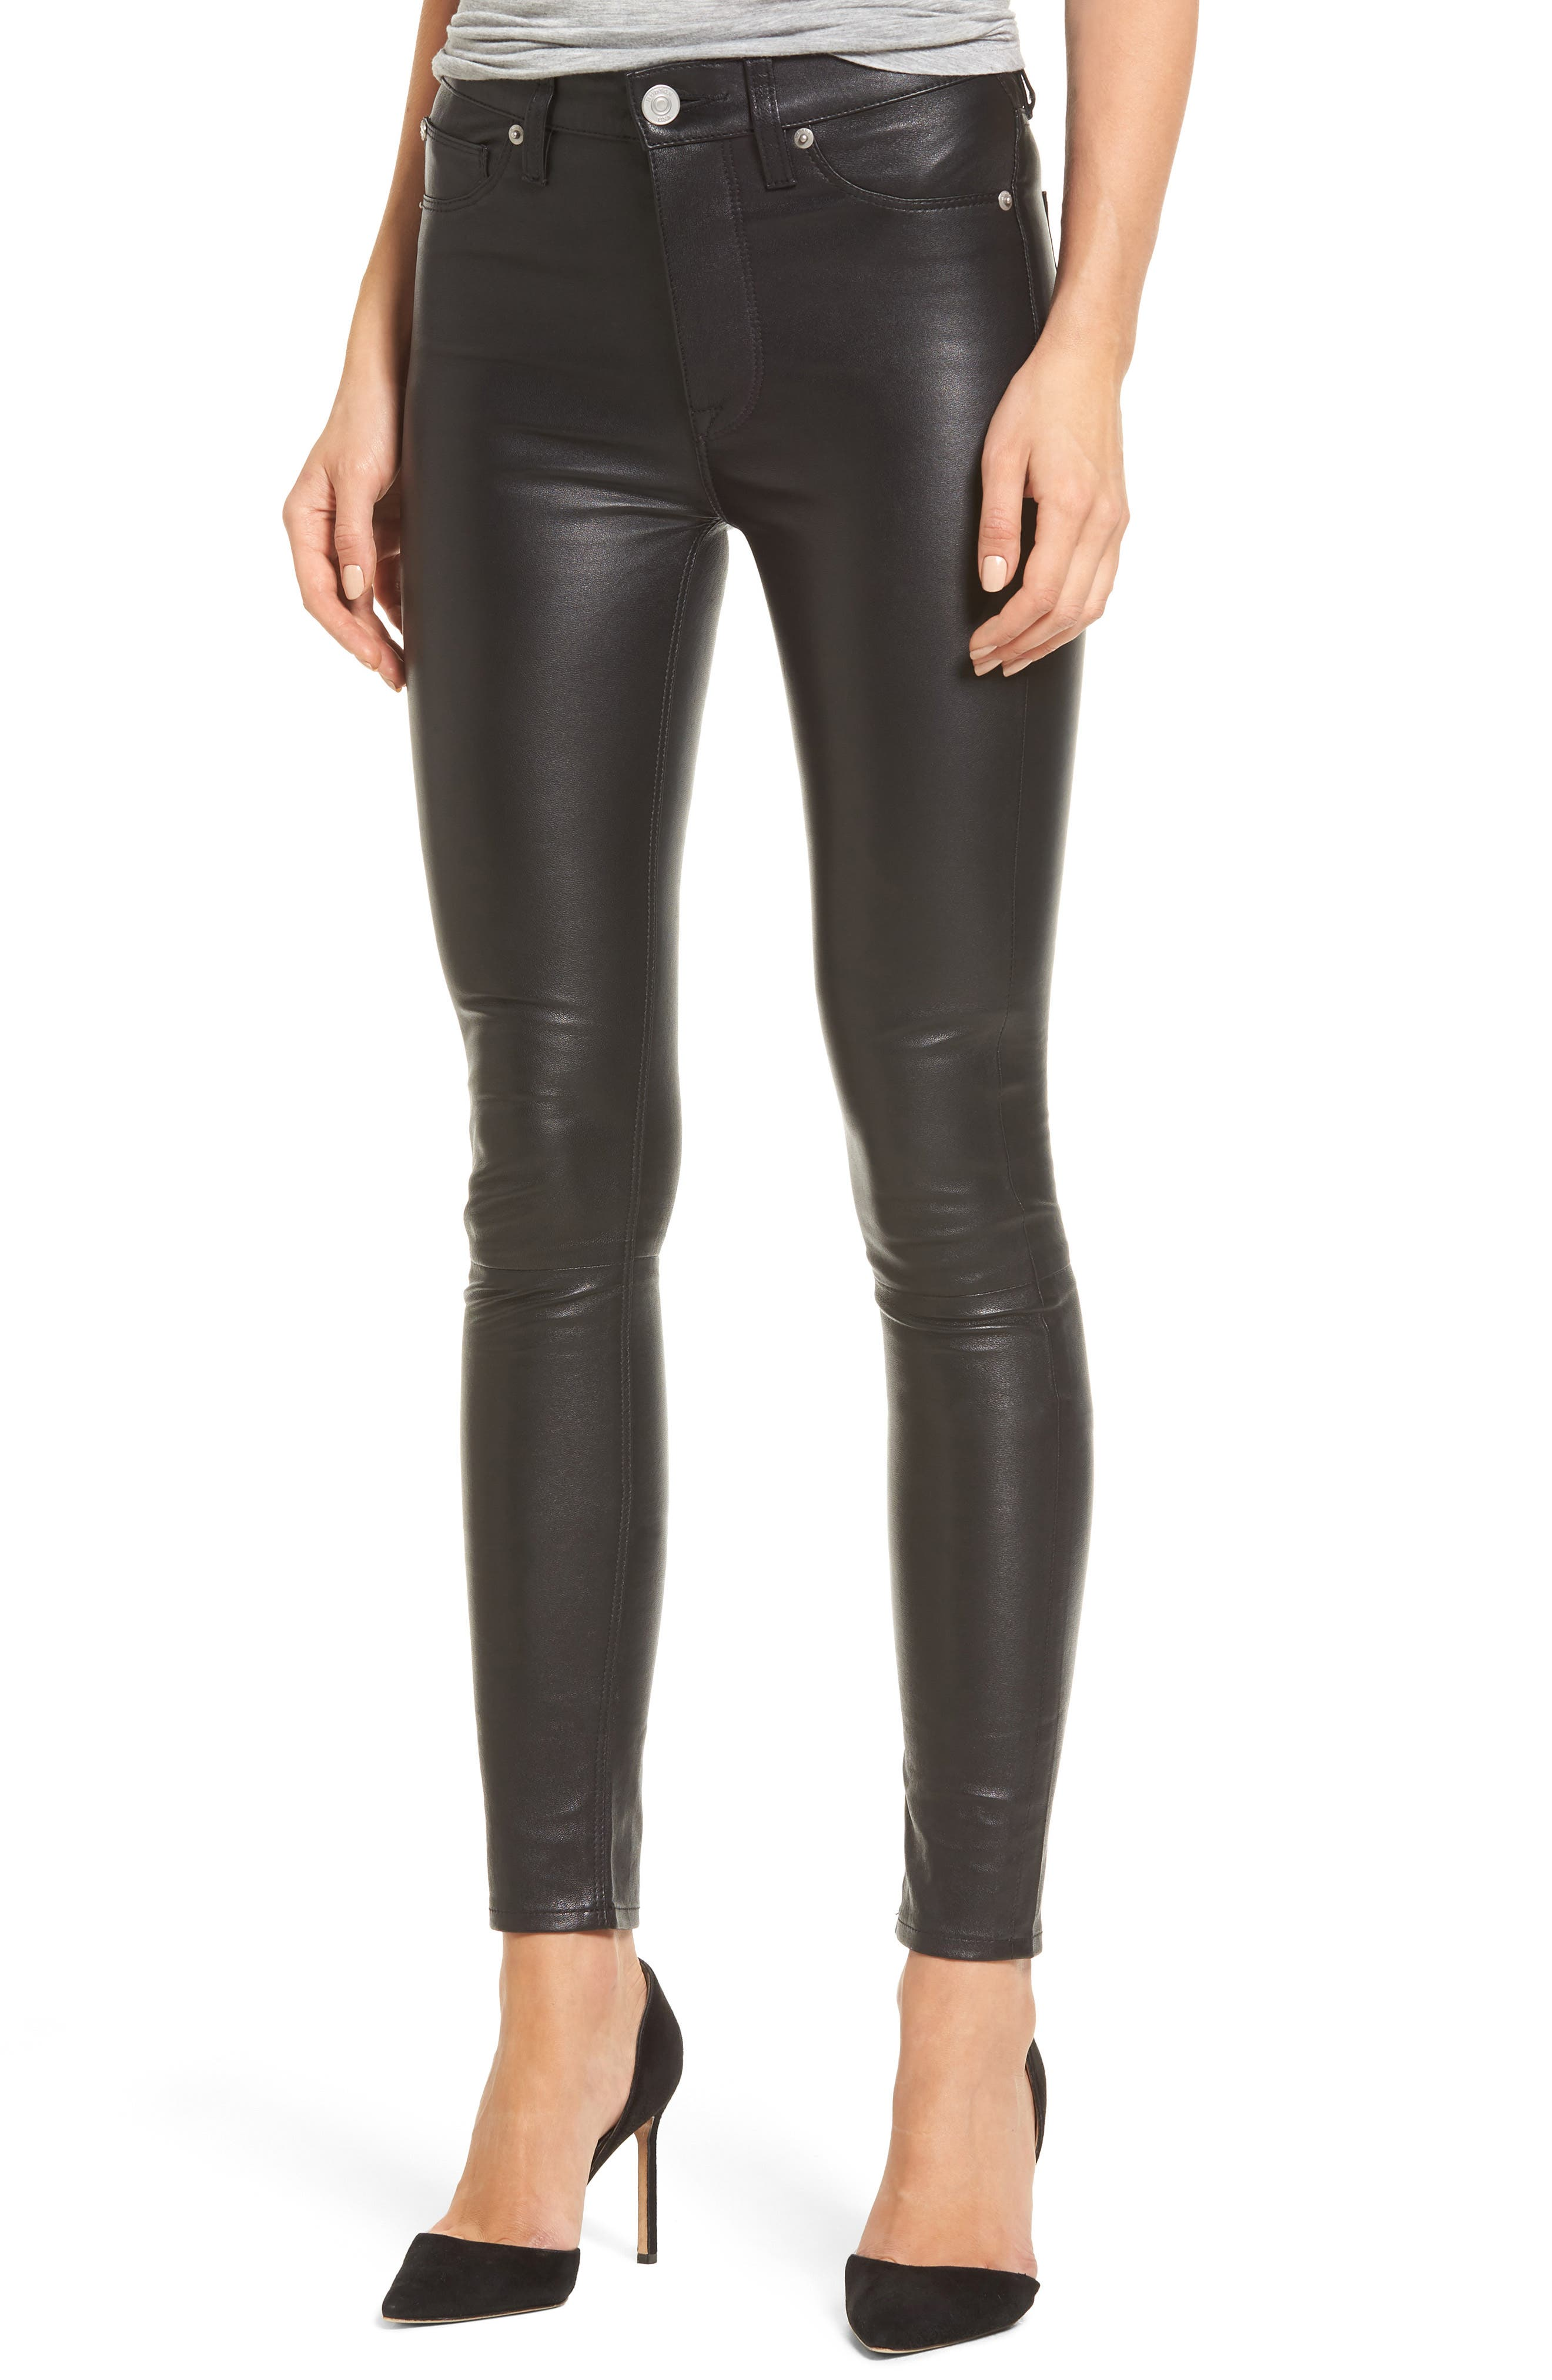 Alternate Image 1 Selected - Hudson Jeans Barbara High Waist Ankle Skinny Leather Pants